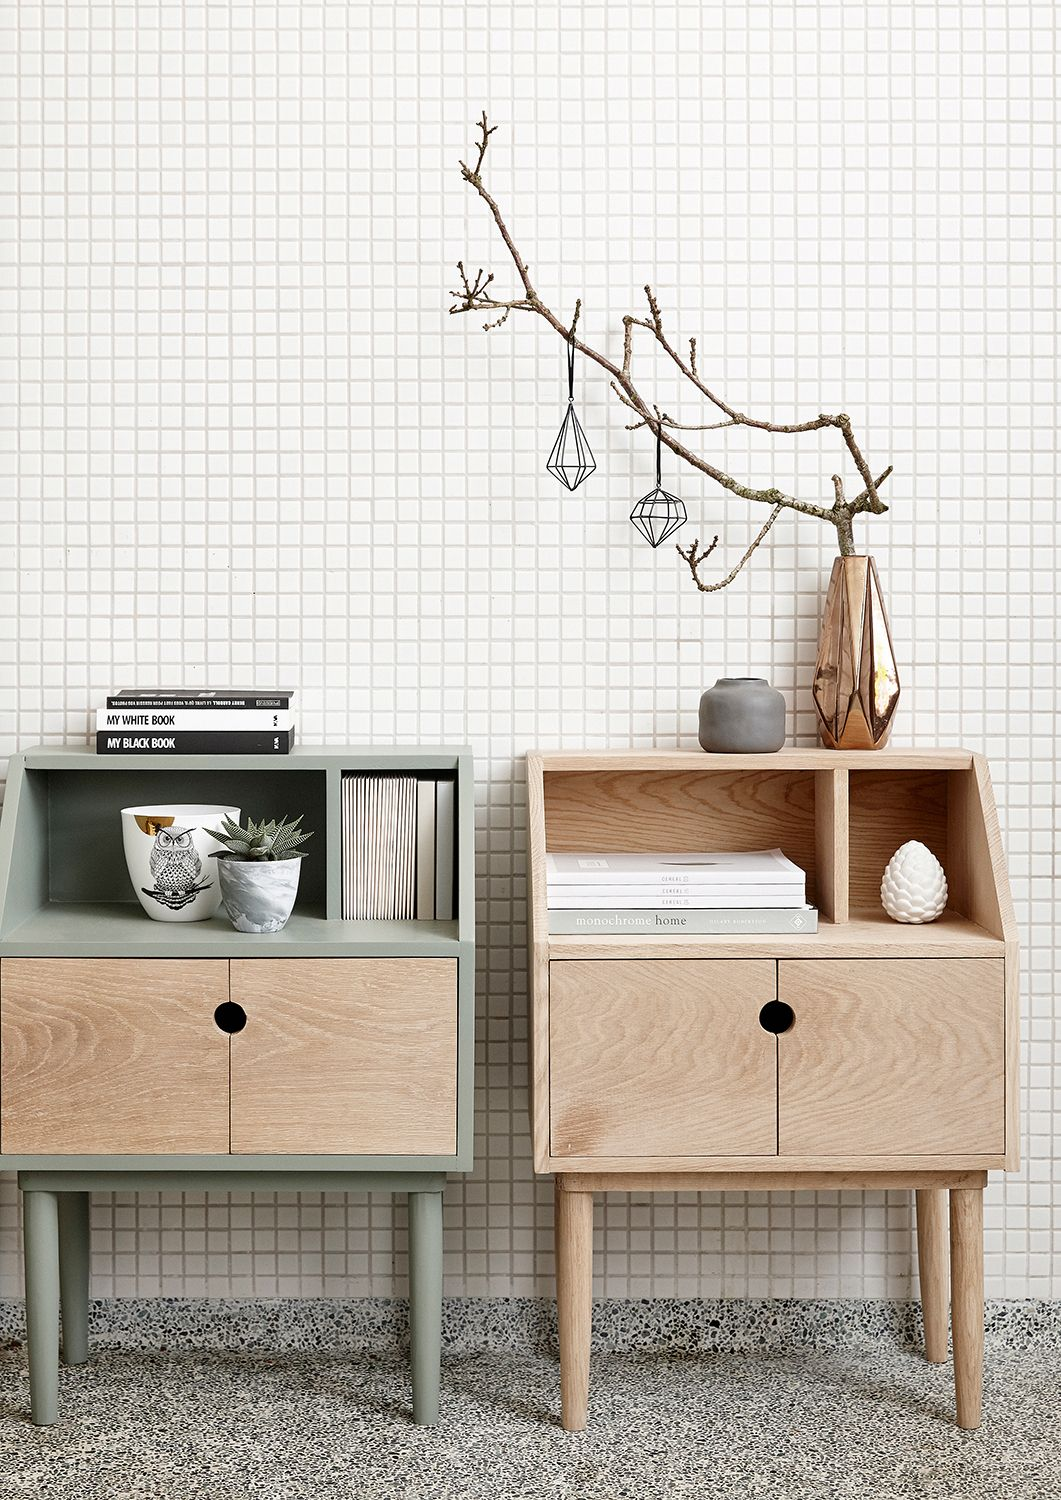 laterne 2er set wei aus keramik mit lederhenkel nordic style pinterest m bel. Black Bedroom Furniture Sets. Home Design Ideas